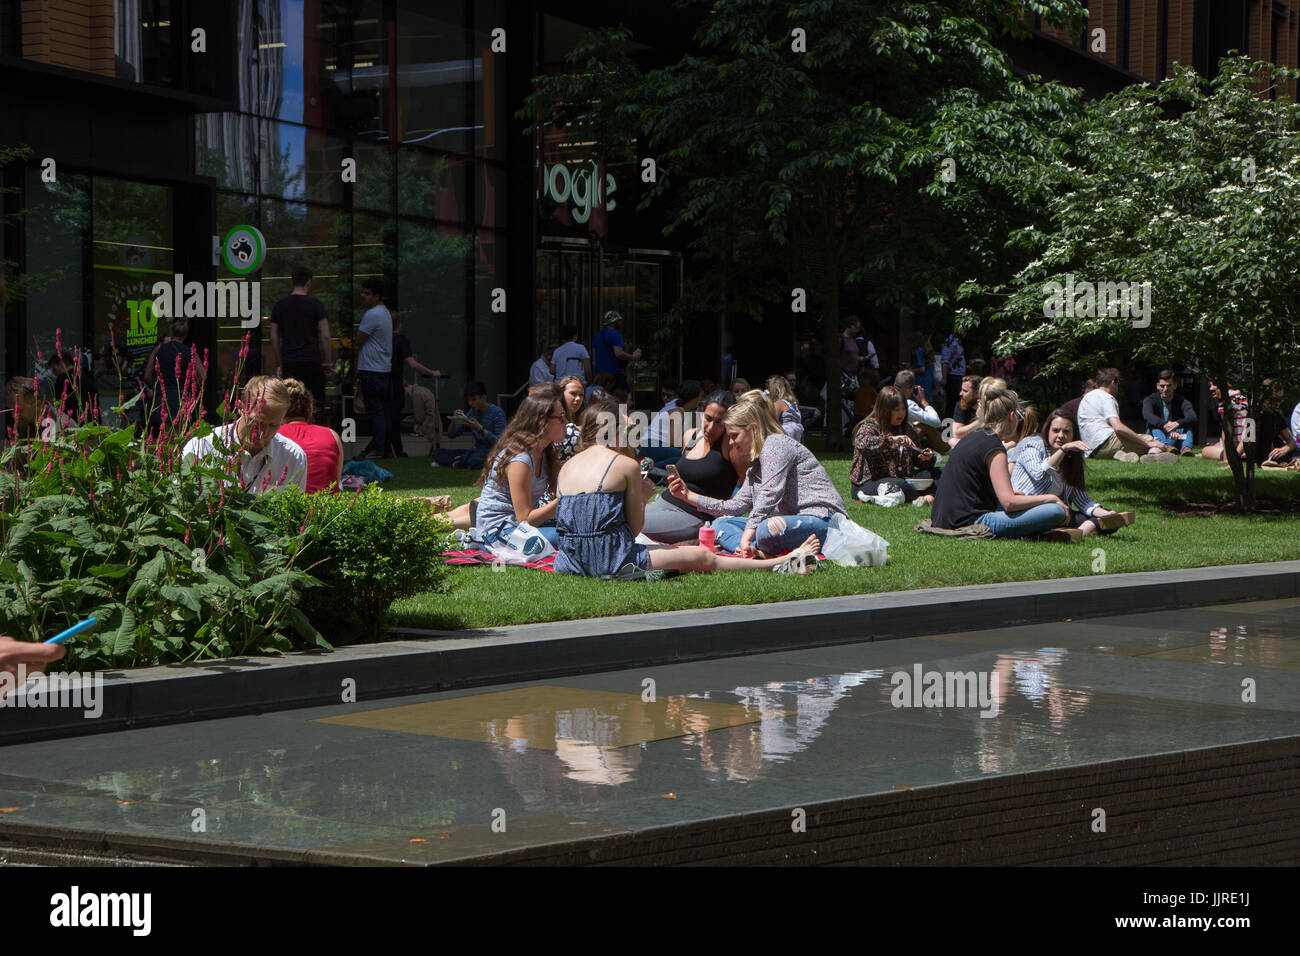 Employees from offices spill out for lunch on grass at Battle Bridge Place, Kings Cross - Stock Image